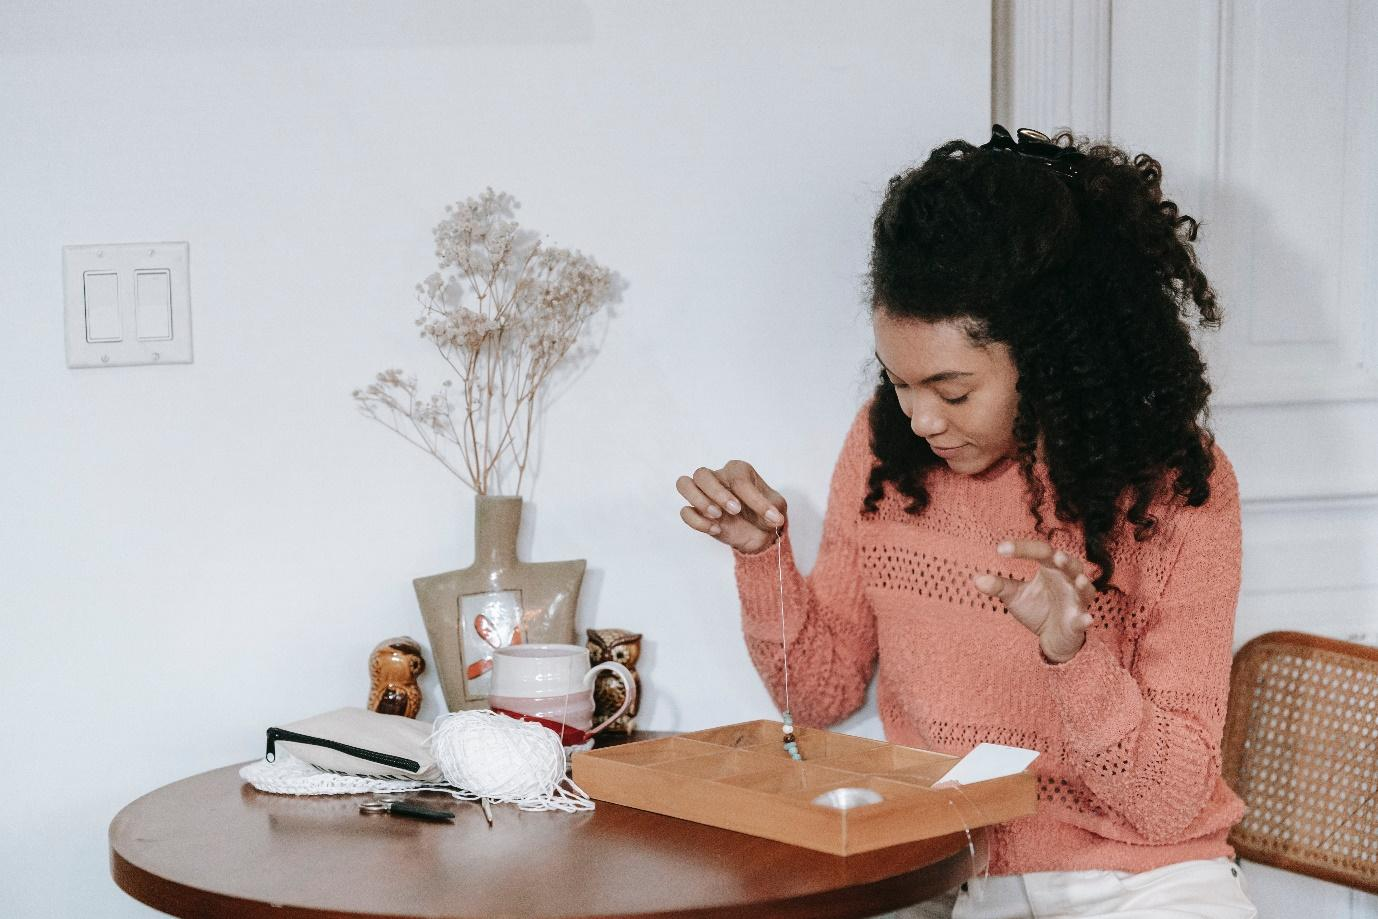 A girl sitting at a table. Work From Home Outfit Ideas So That You Always Look Amazing